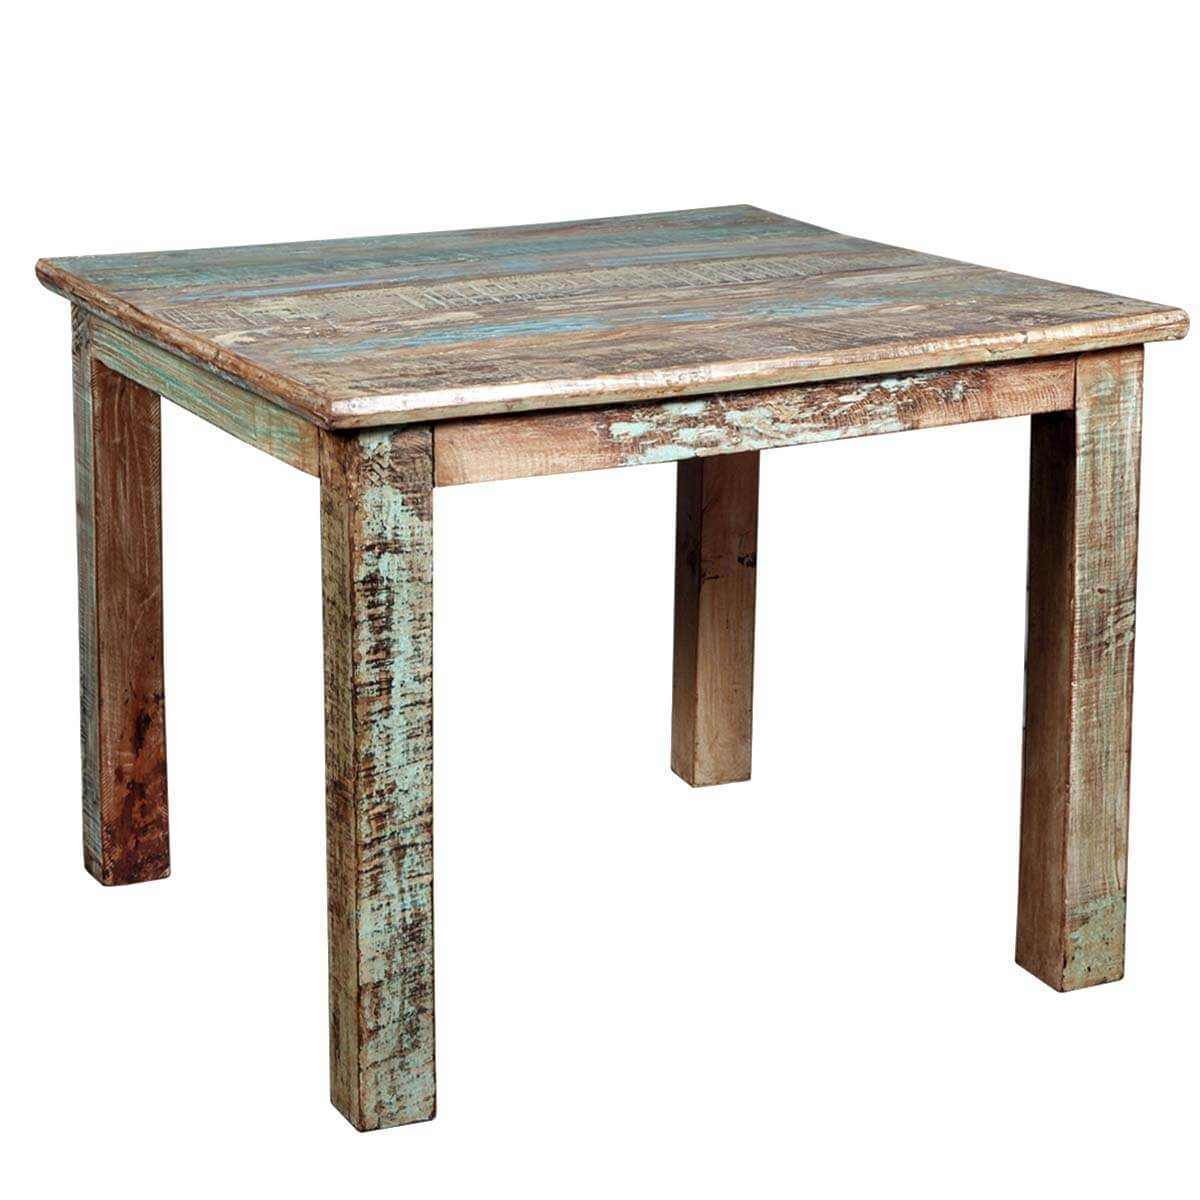 Rustic Reclaimed Wood Distressed Small Kitchen Dining Table